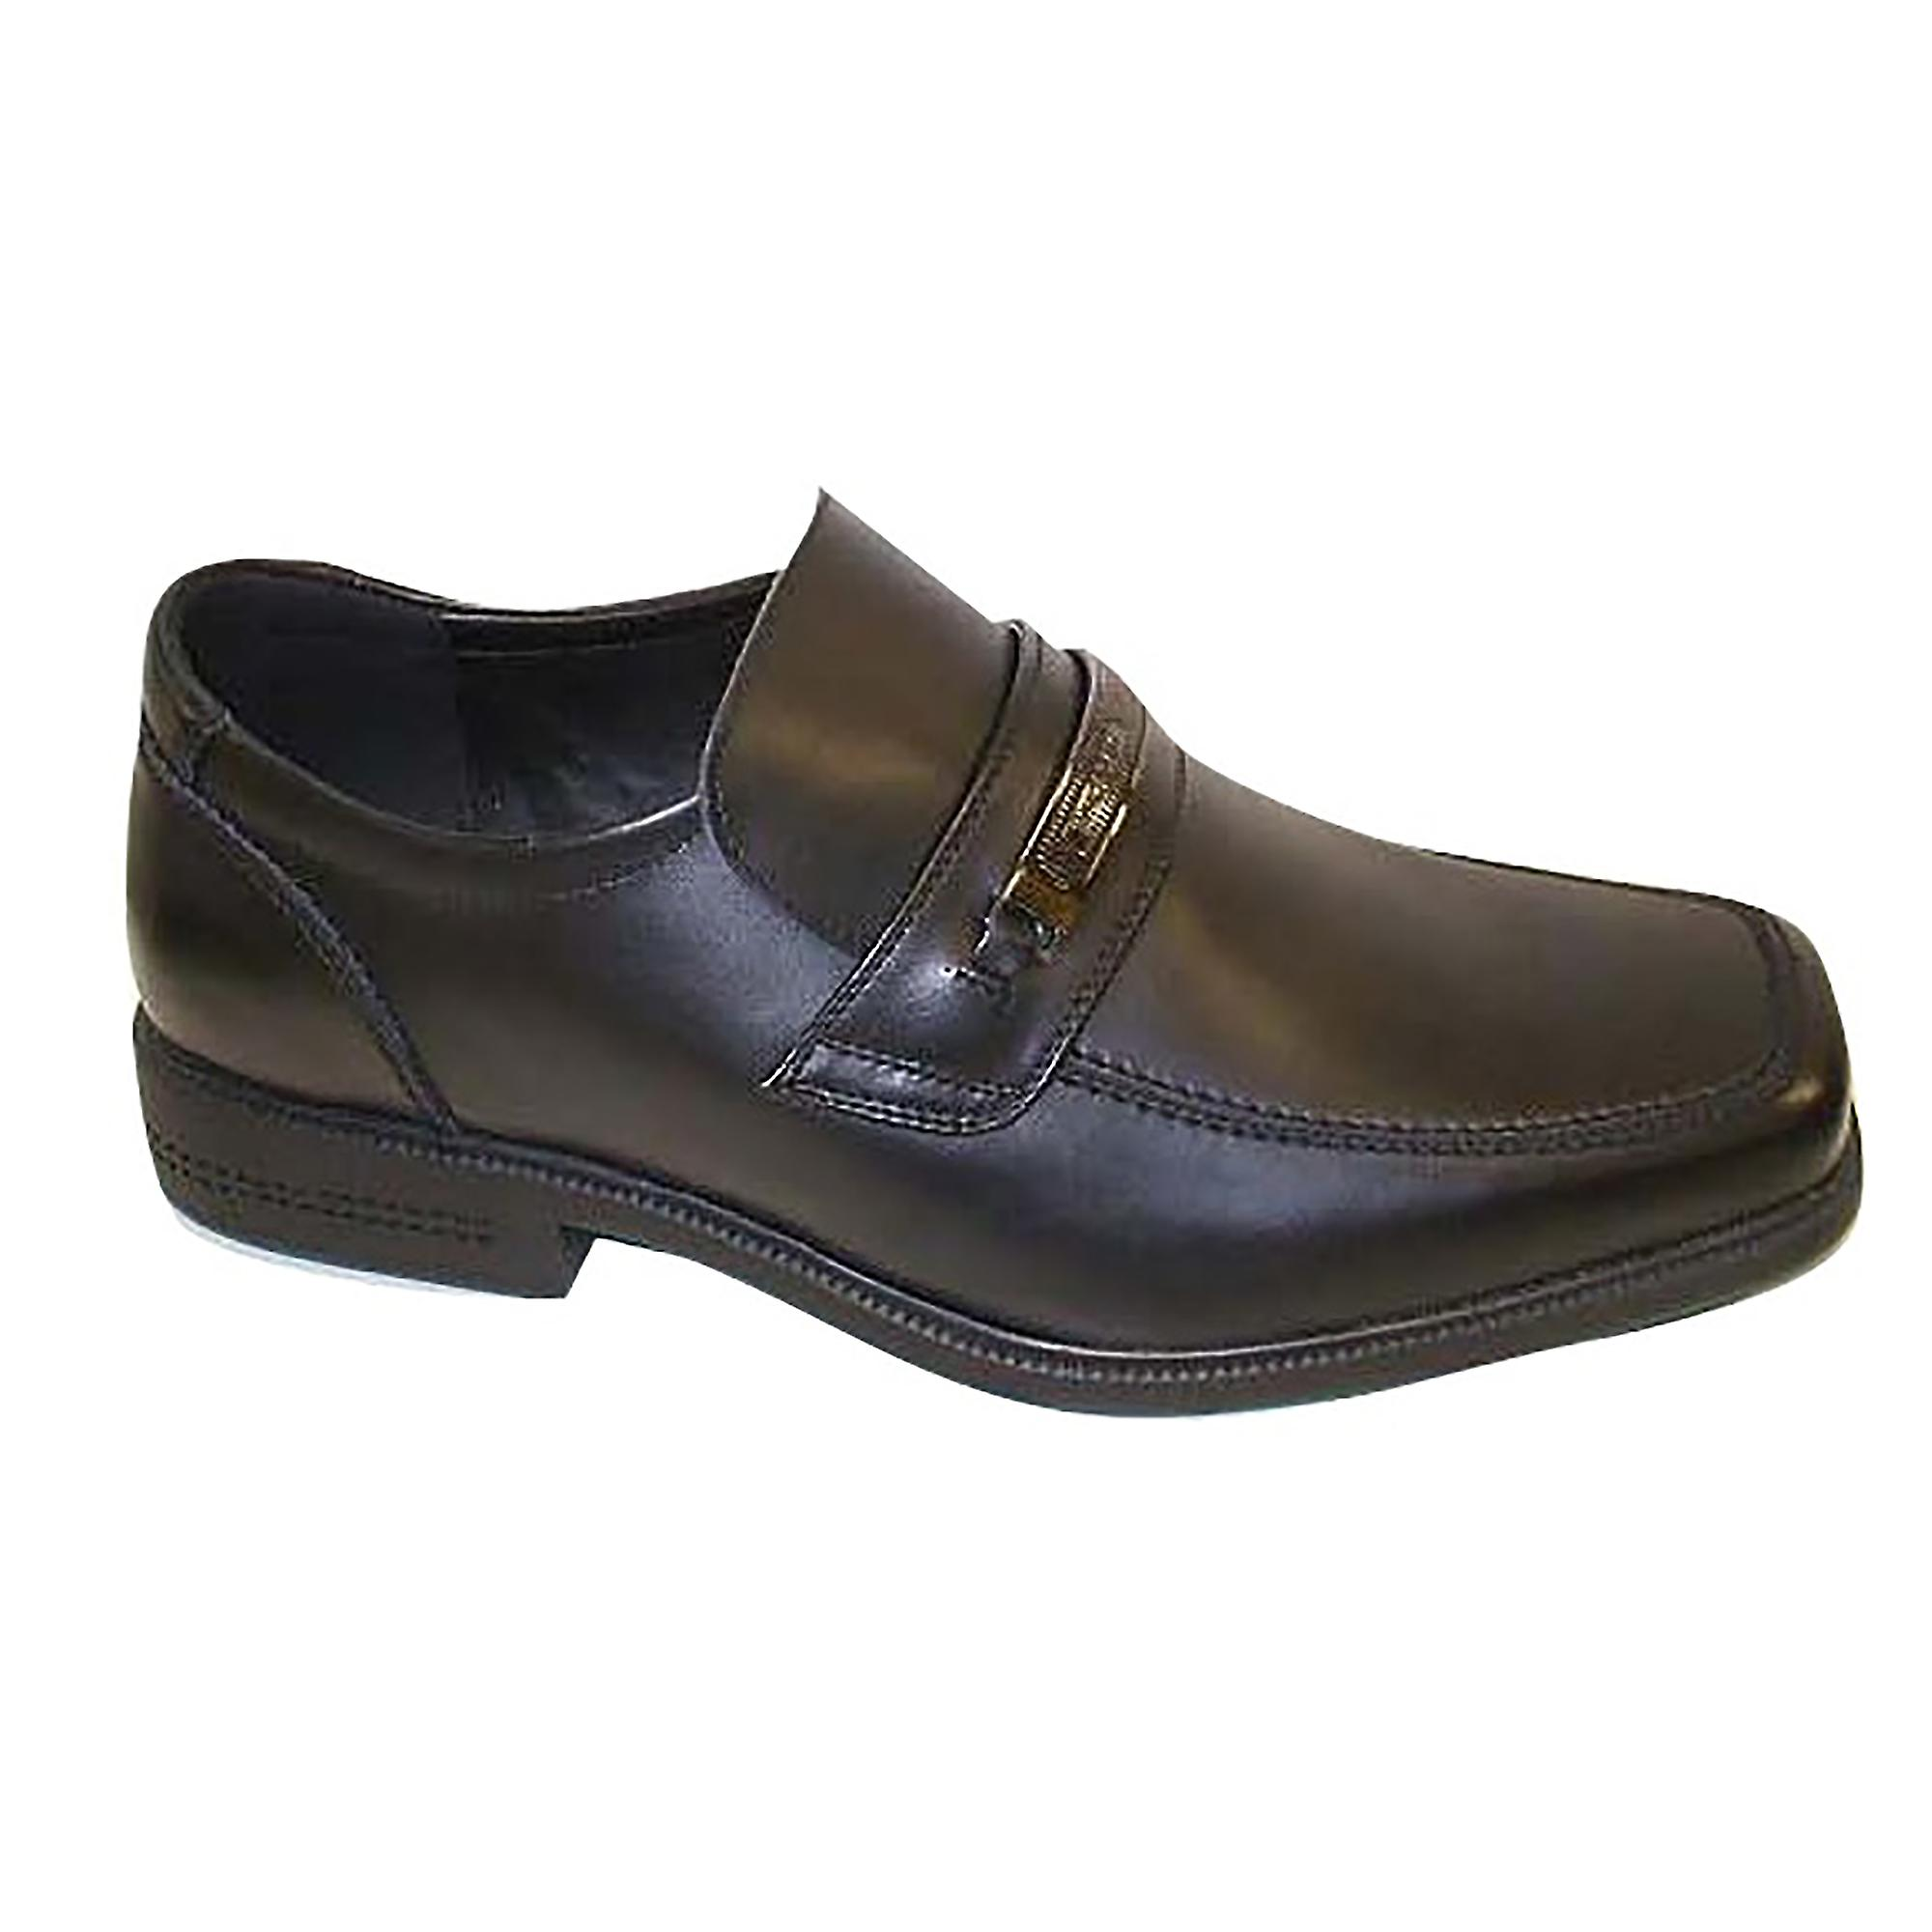 Macadam Bournemouth Leather Shoe / Boys Shoes / Boys BTS